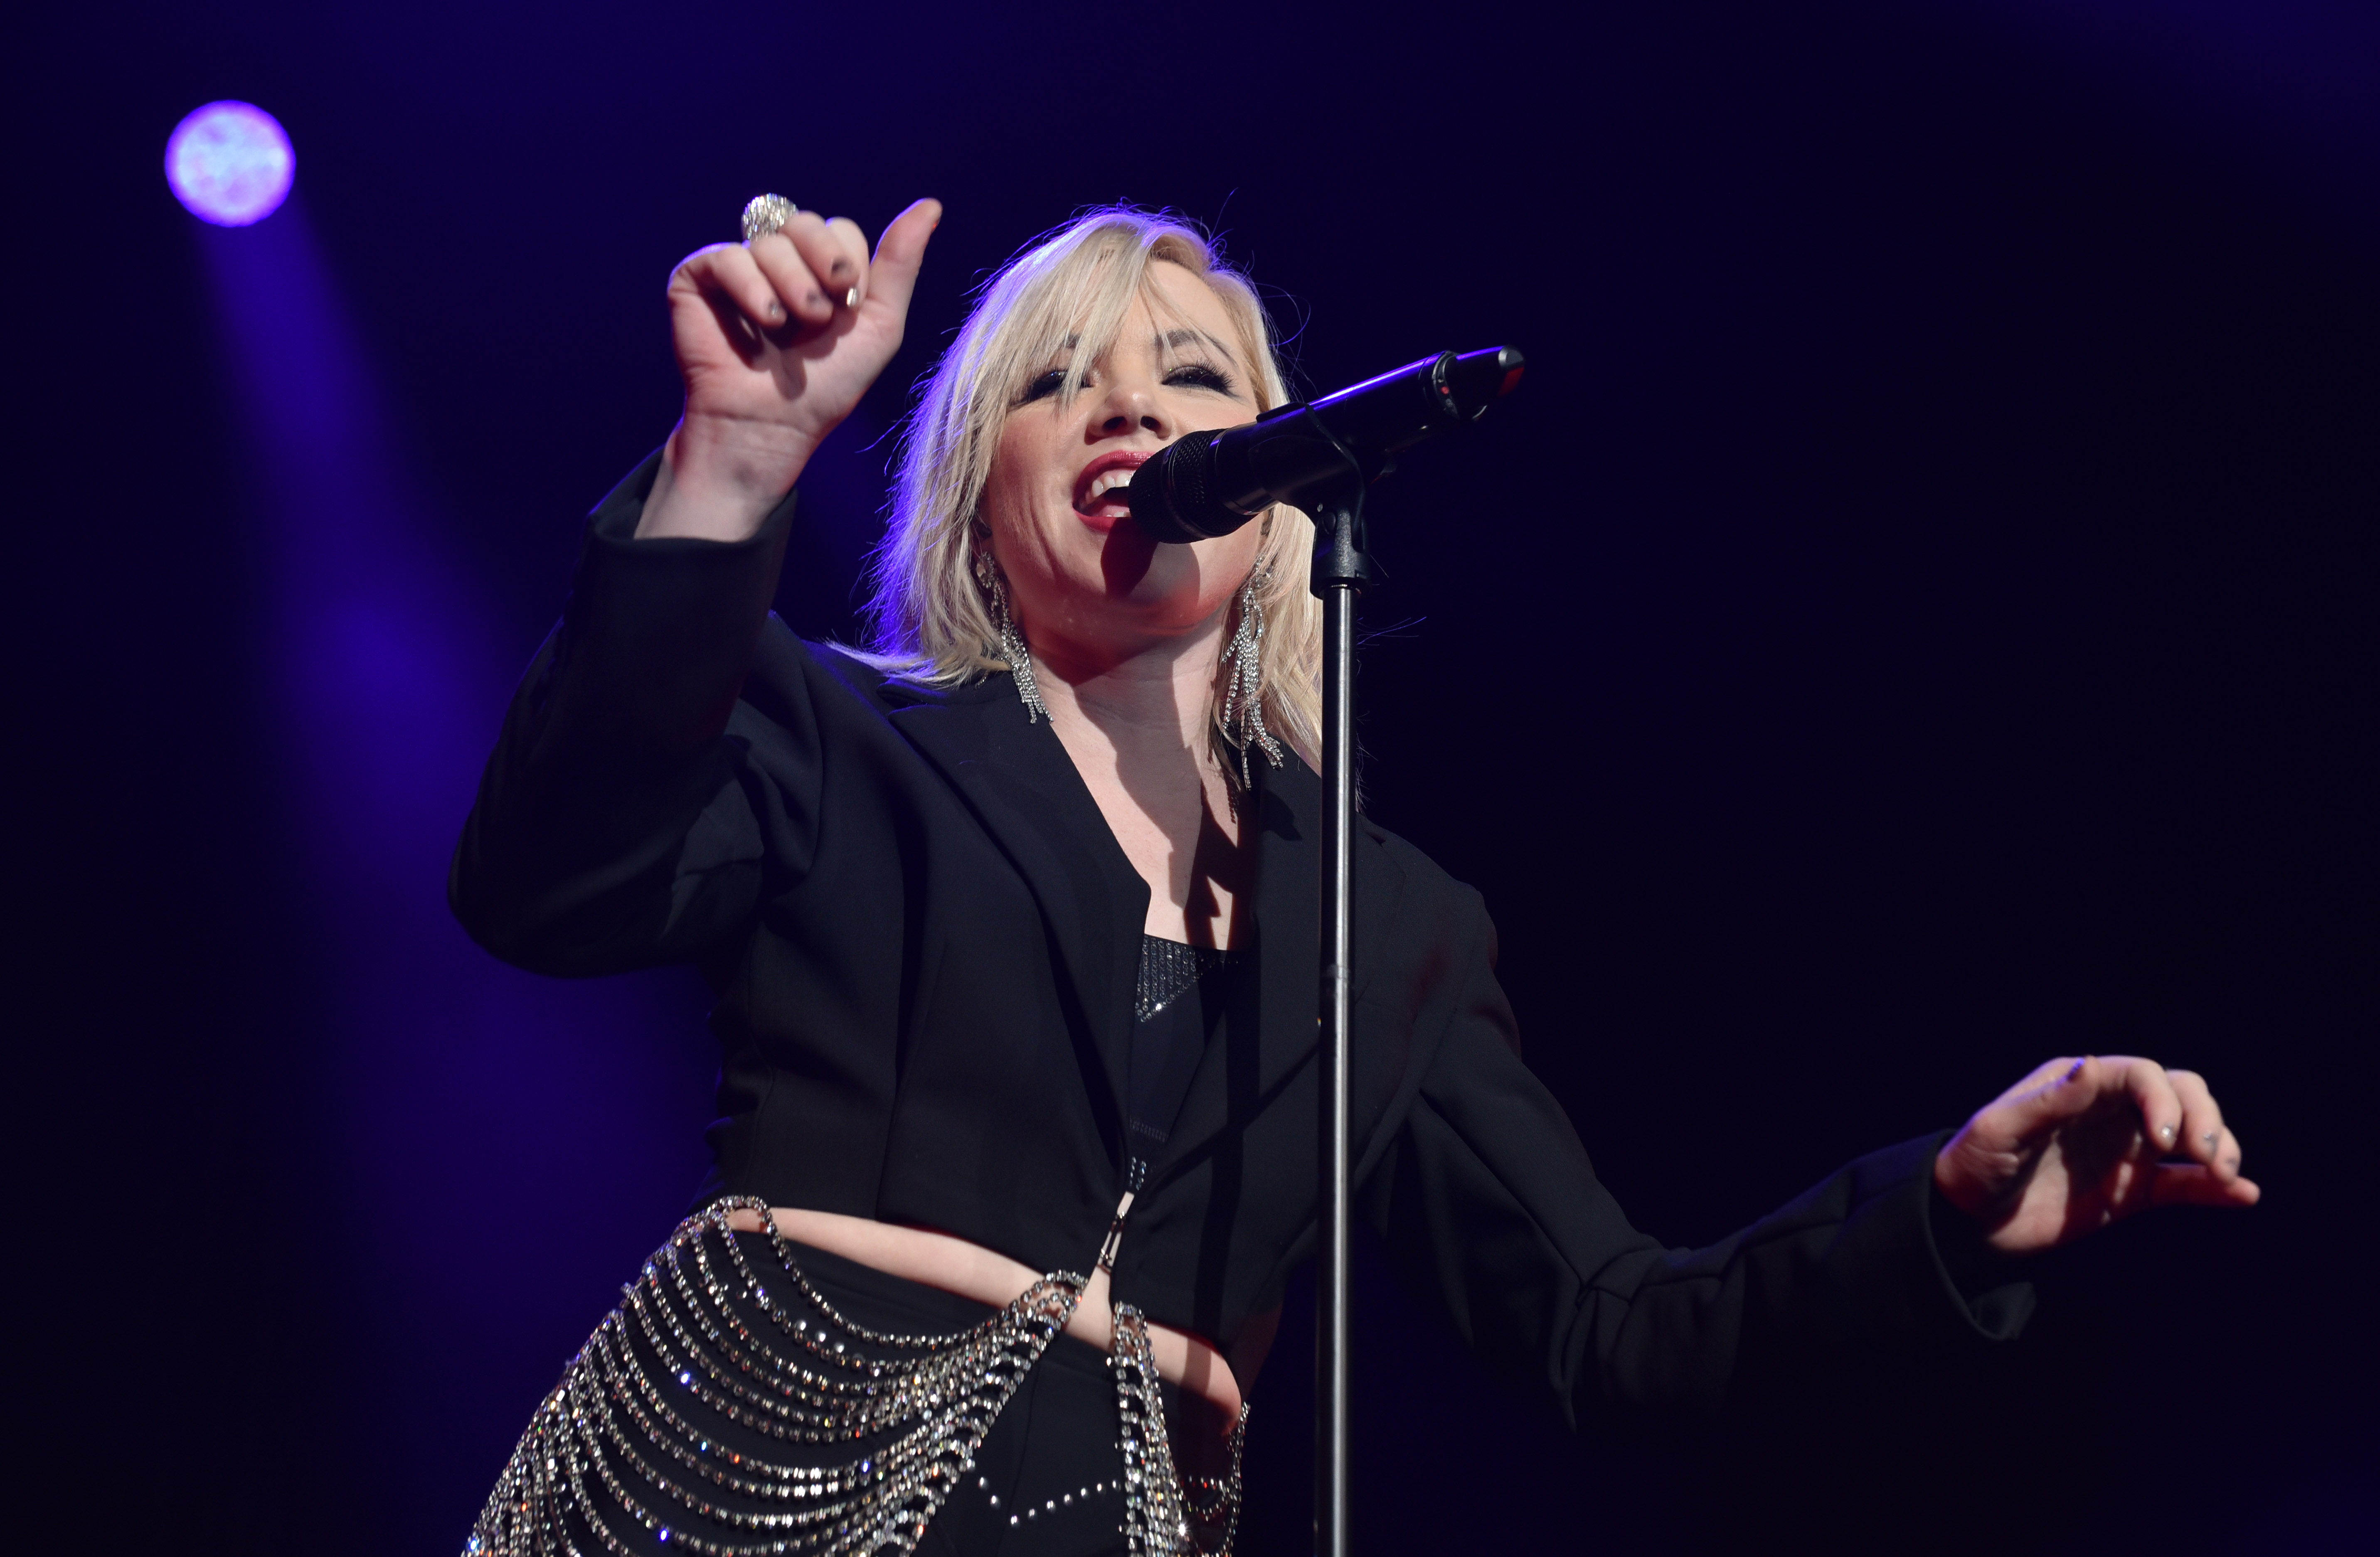 Carly Rae Jepsen Performs At O2 Brixton Academy, London